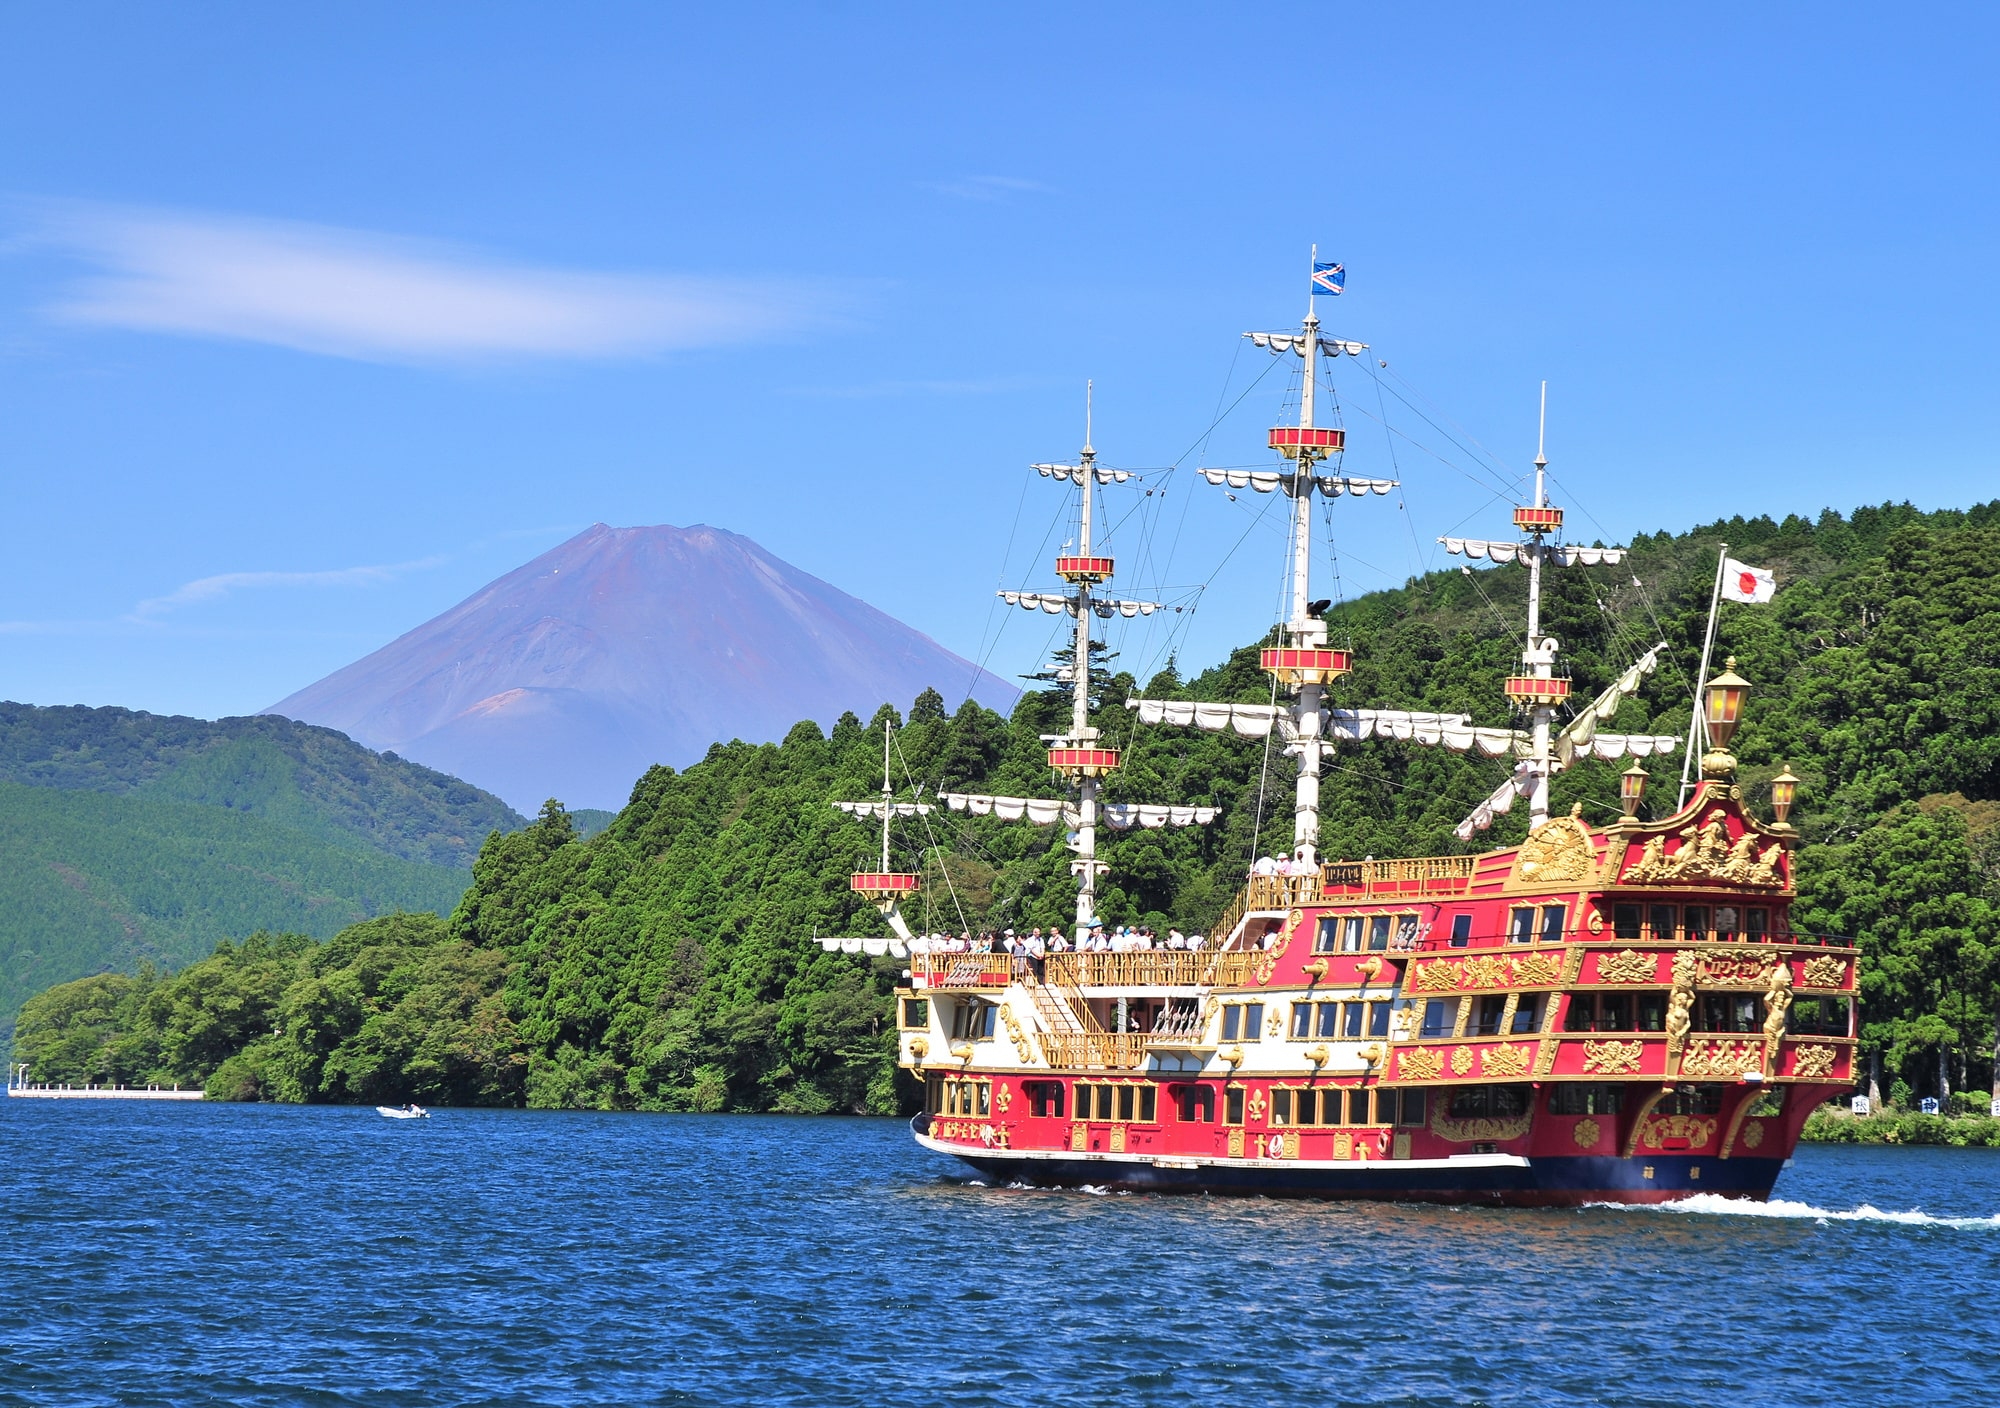 Cruise Hakone S Lake Ashi On A Pirate Ship Nearby Spots Ticket Deals The Gate Japan Travel Magazine Find Tourism Travel Info